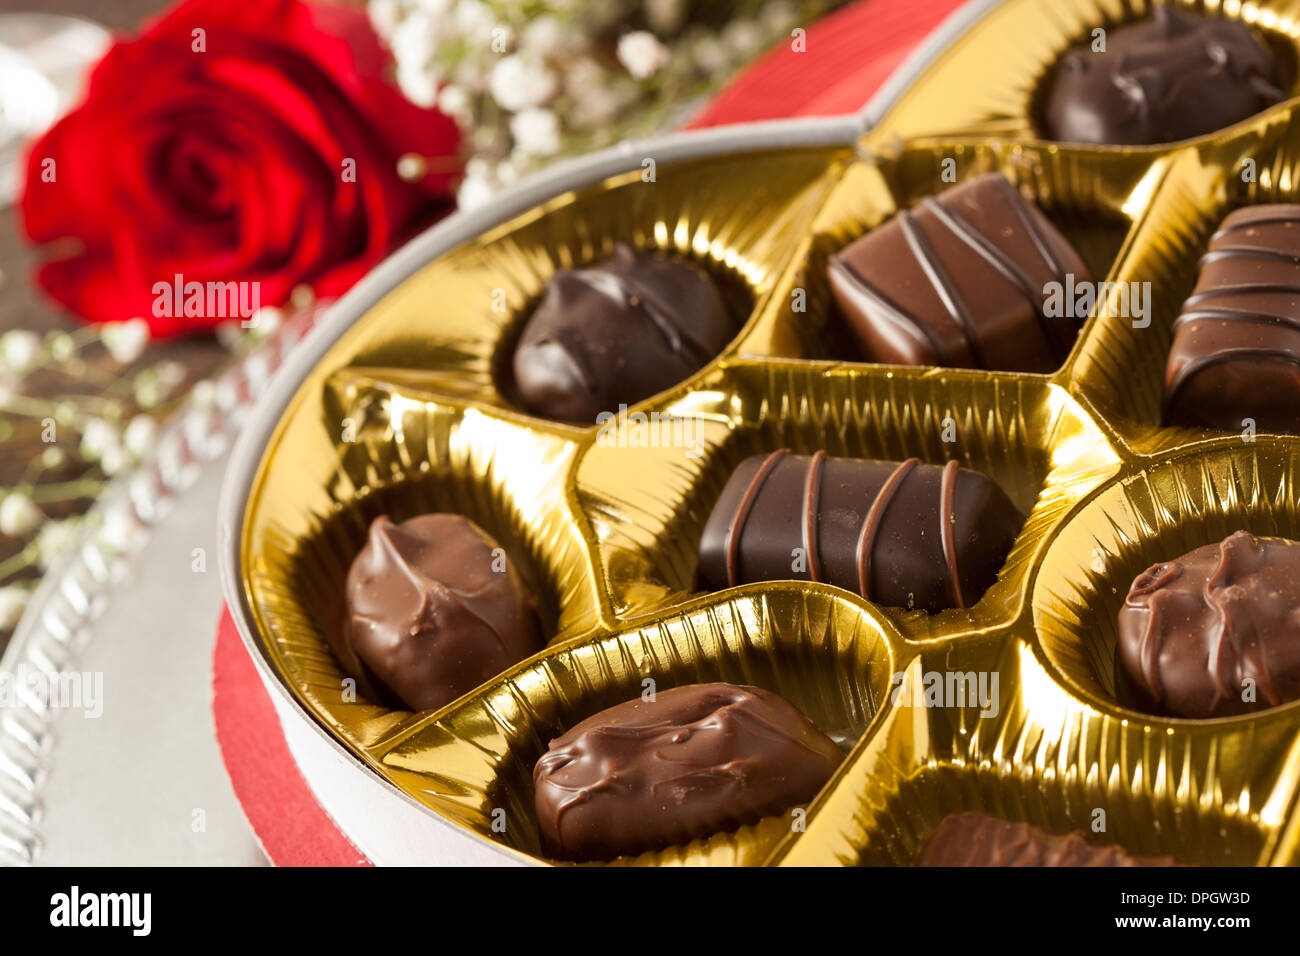 Fancy Box of Gourmet Chocolates for Valentine's Day Stock Photo ...